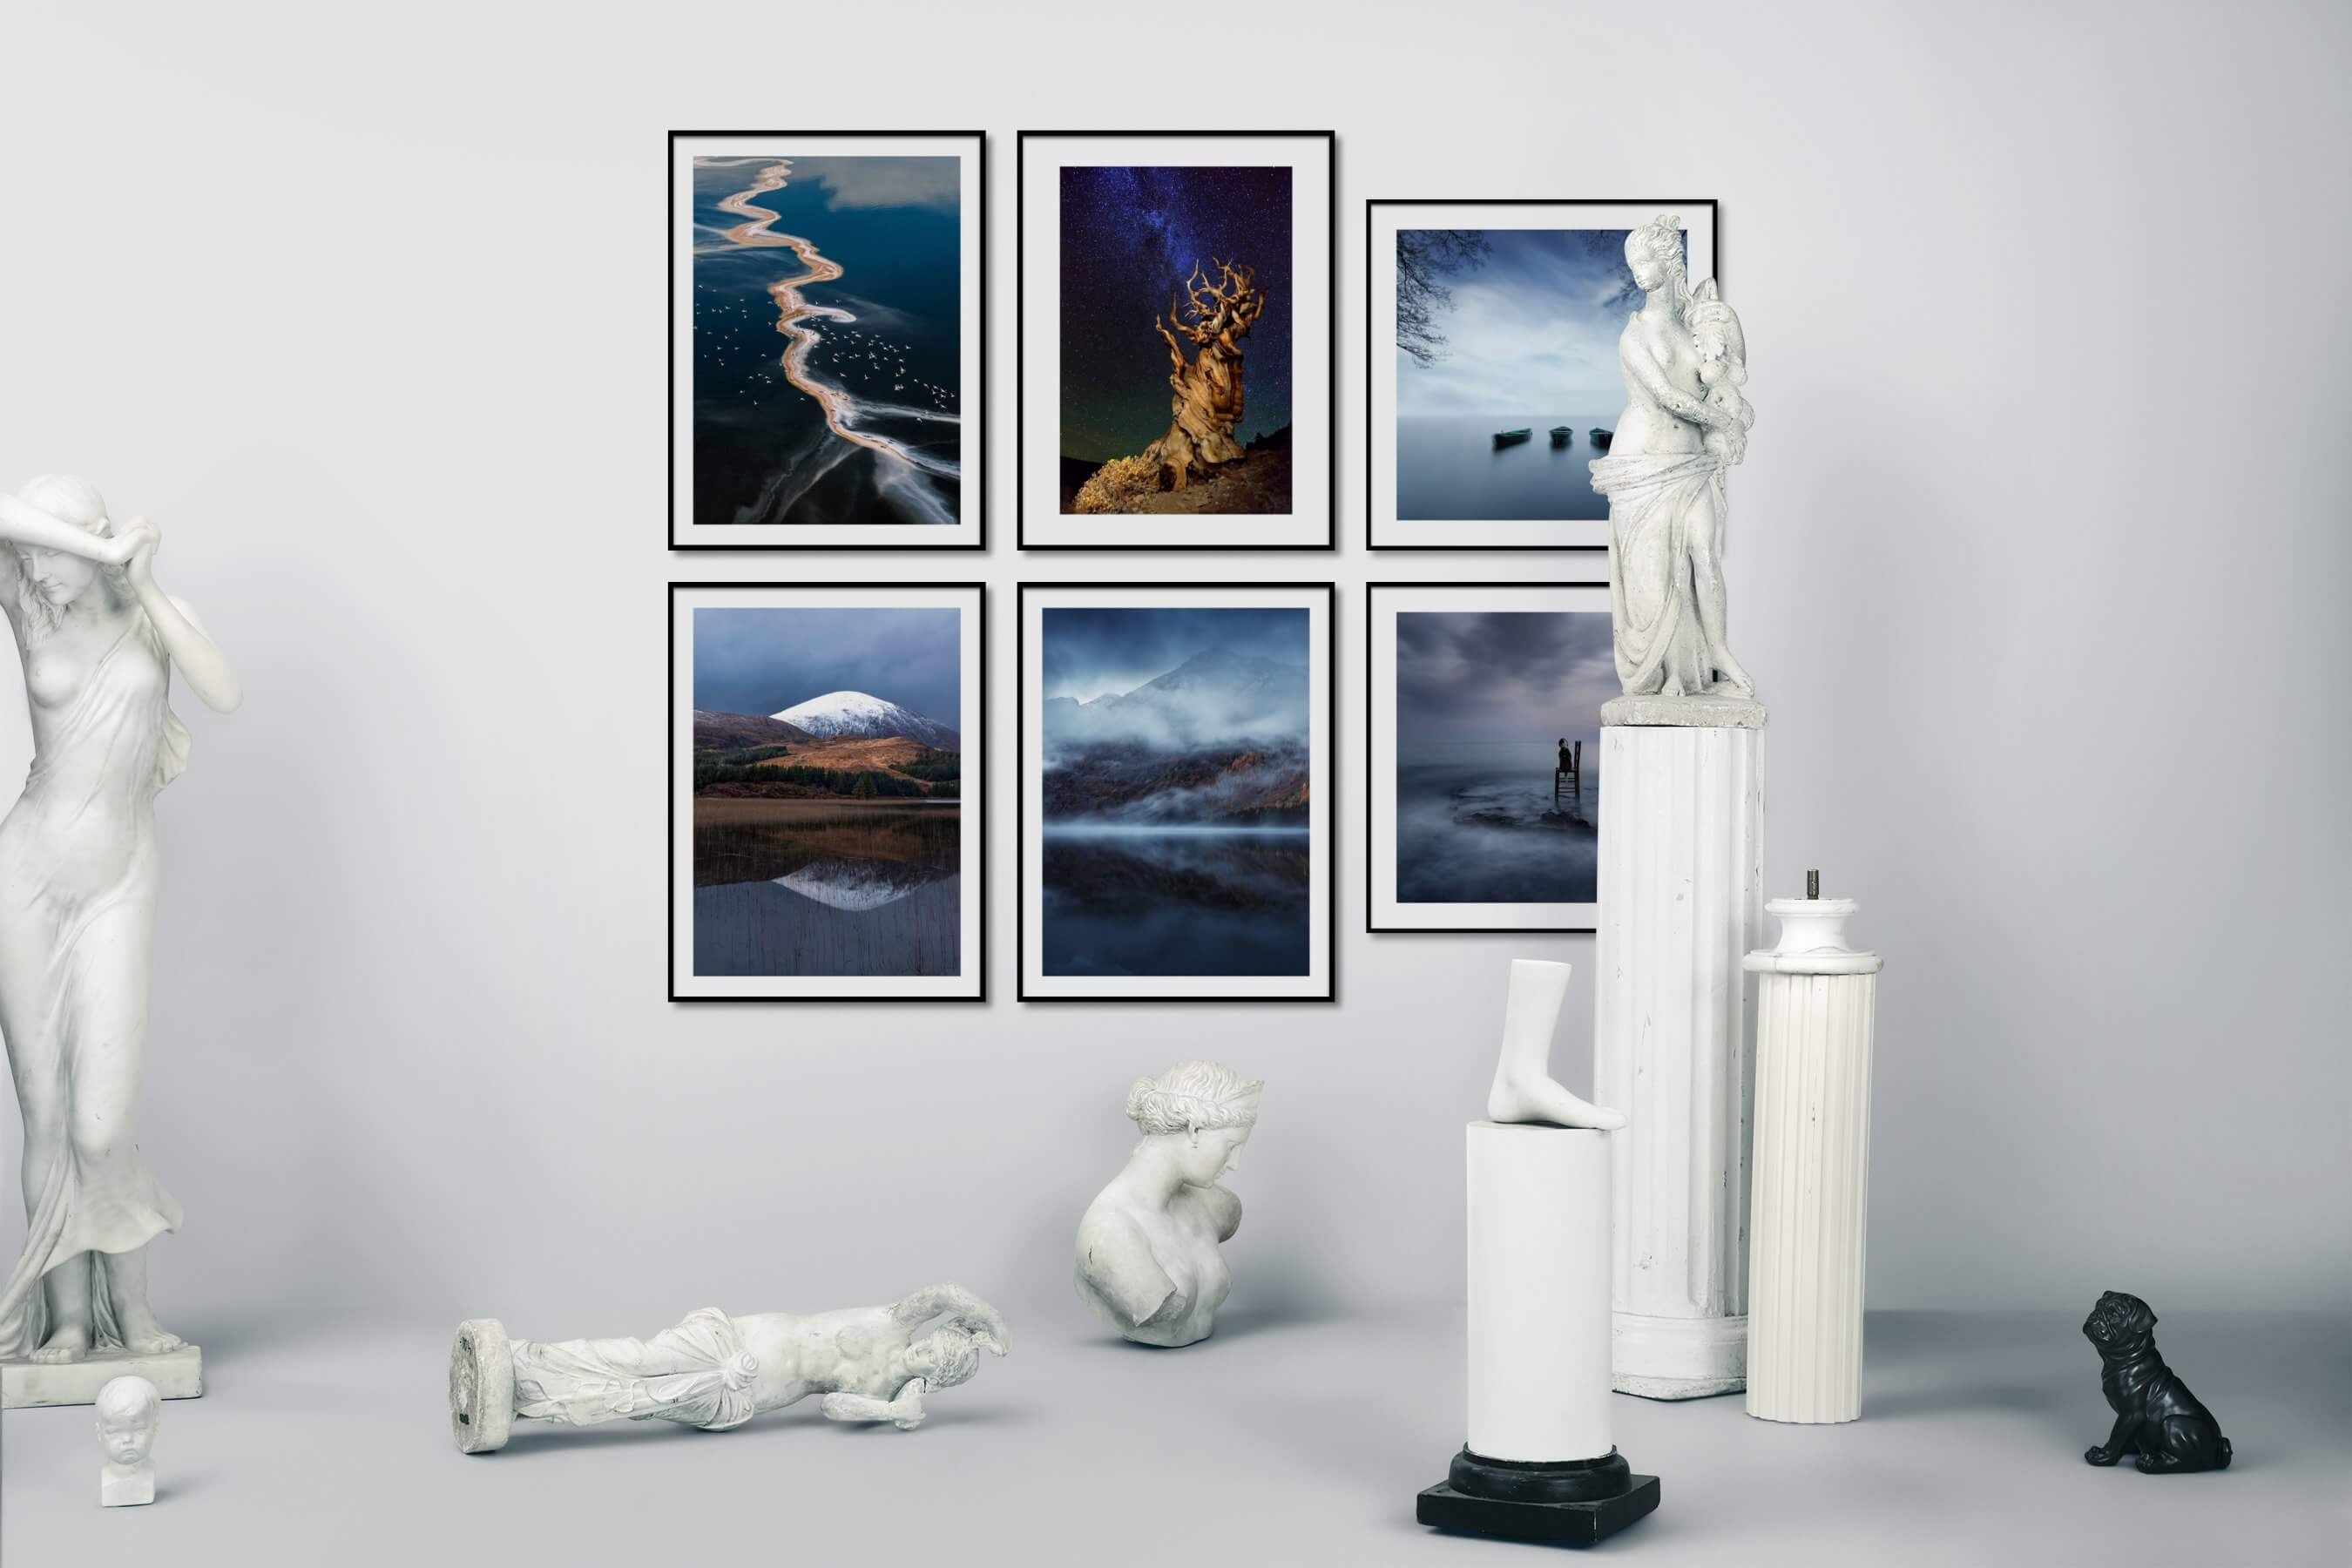 Gallery wall idea with six framed pictures arranged on a wall depicting For the Moderate, Nature, For the Minimalist, Beach & Water, and Mindfulness